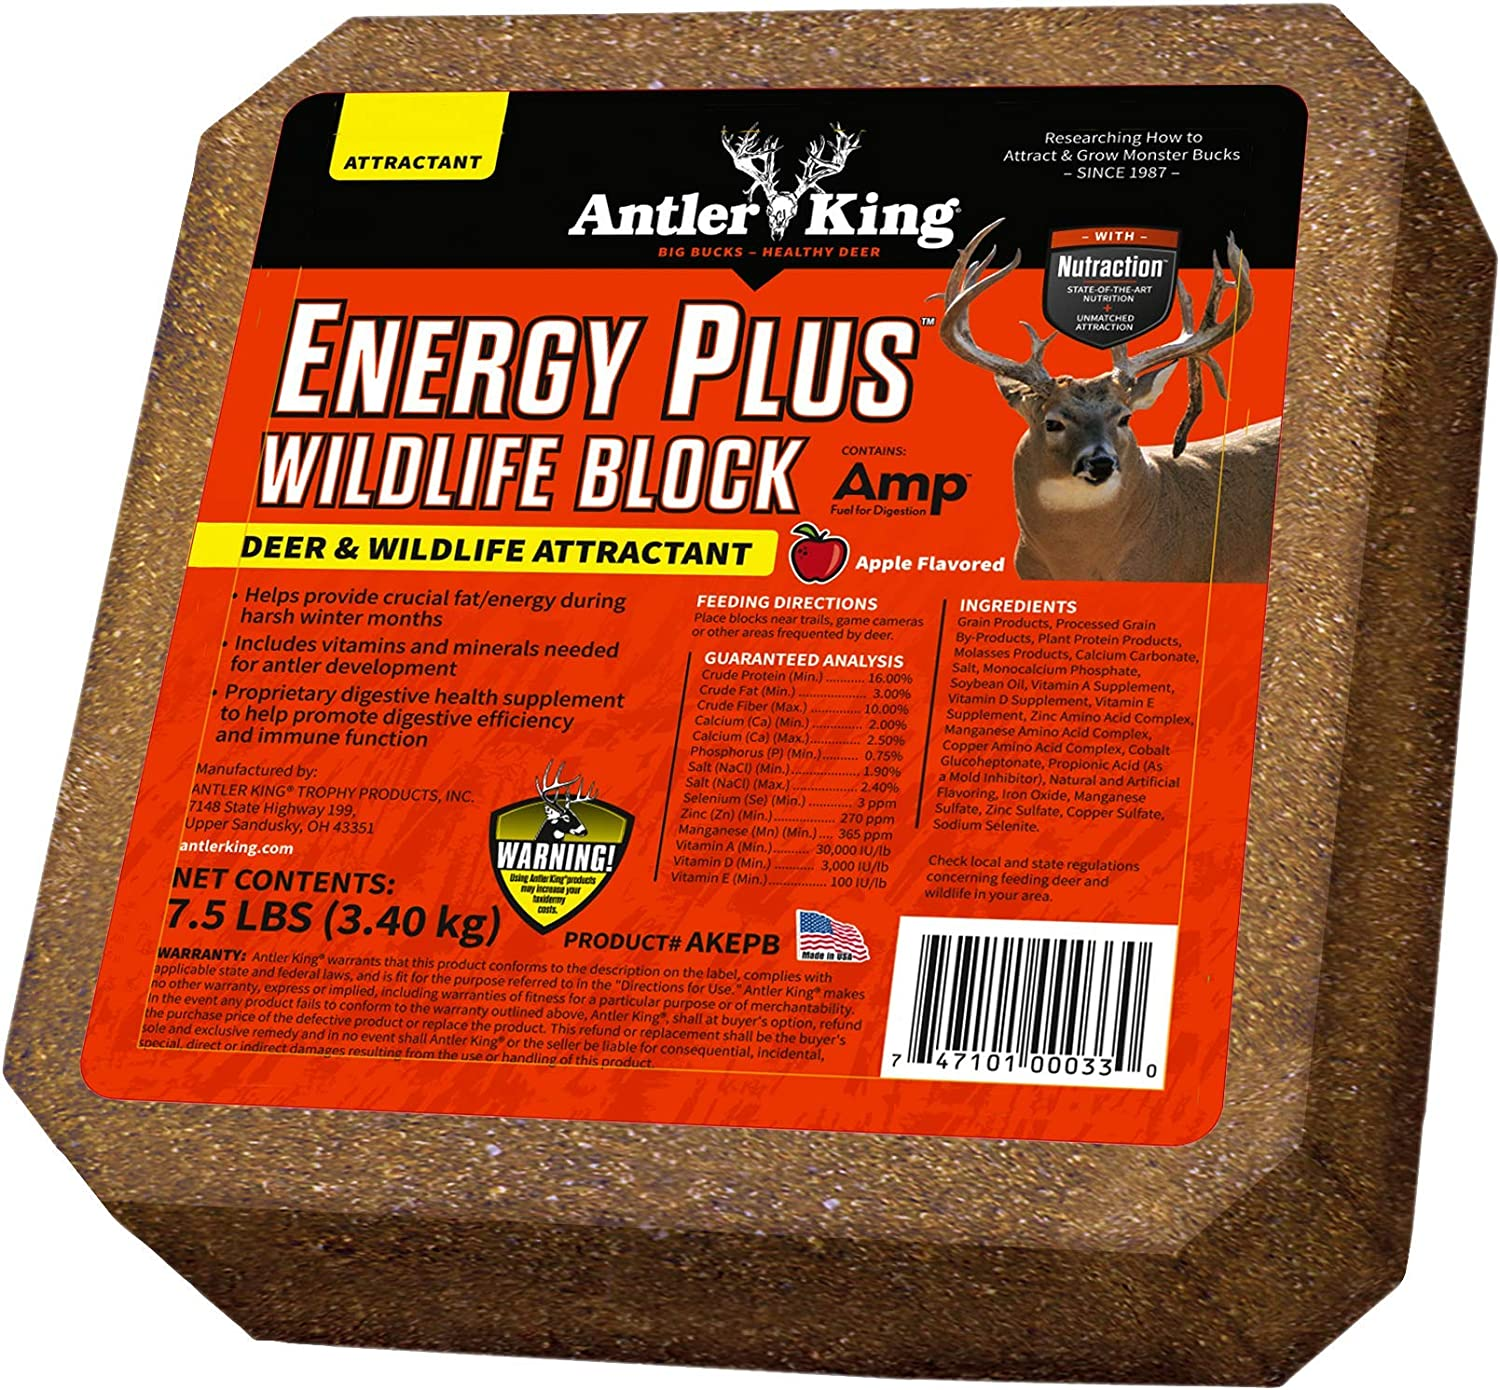 Antler King Energy Plus Pack Free shipping anywhere in the nation Import Block Wildlife